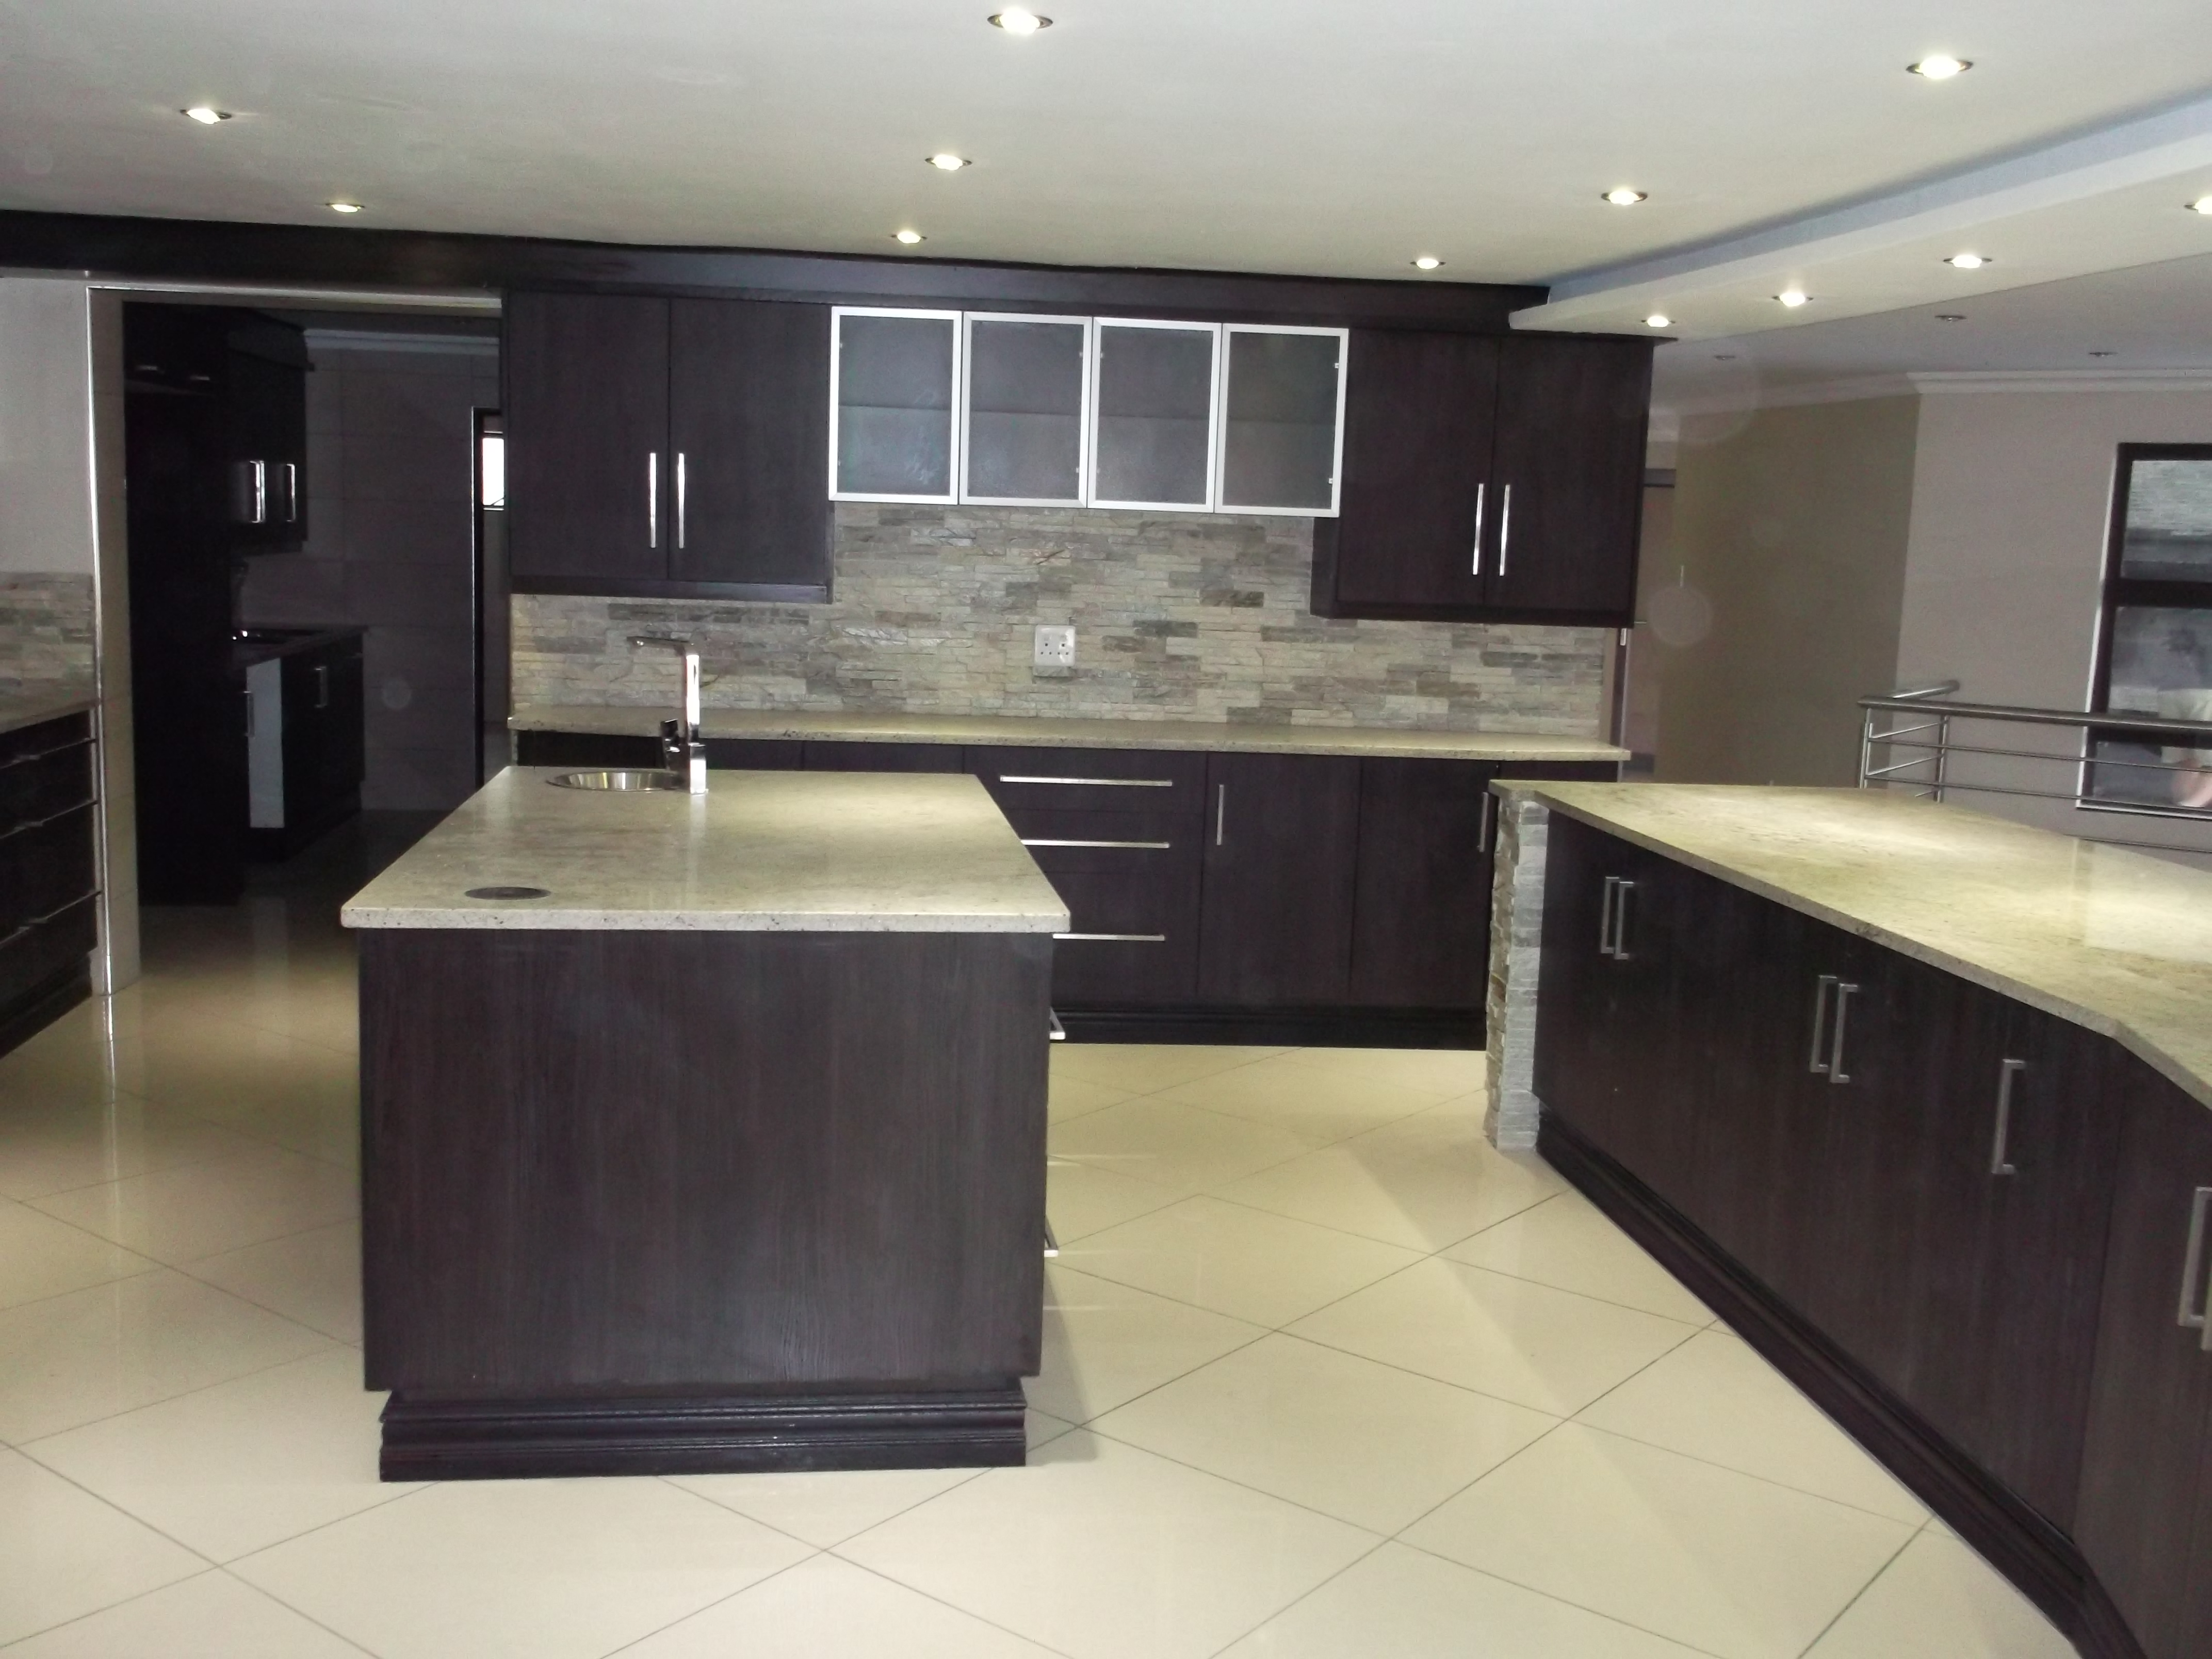 Foil wrap kitchens nico 39 s kitchens for Kitchen units gauteng